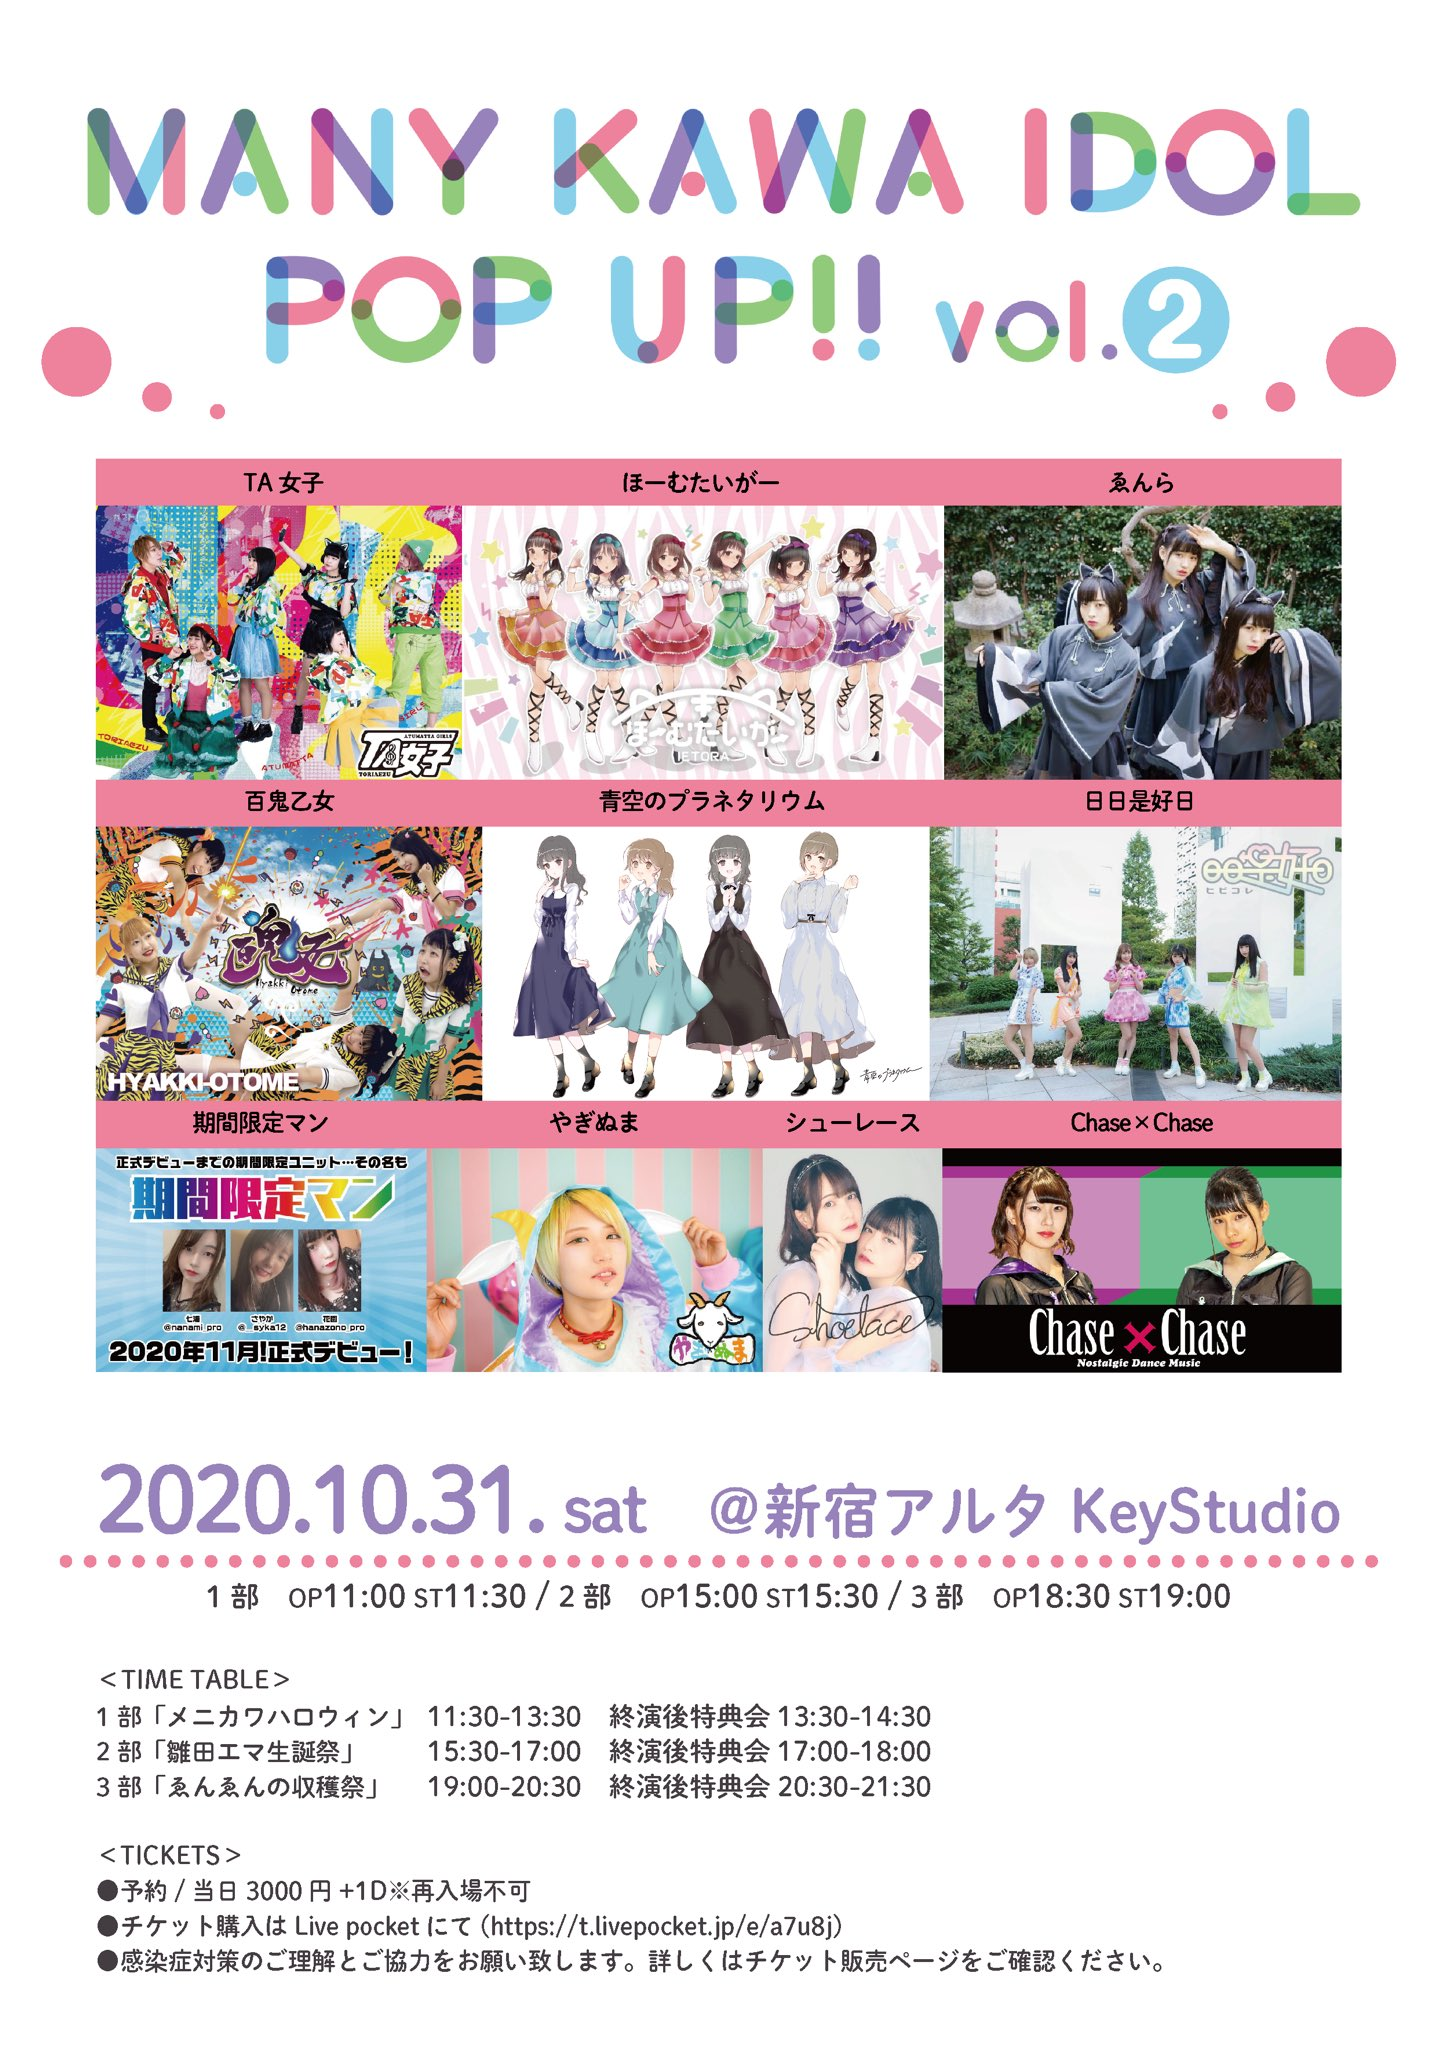 MANY KAWA IDOL POP UP!! vol.2